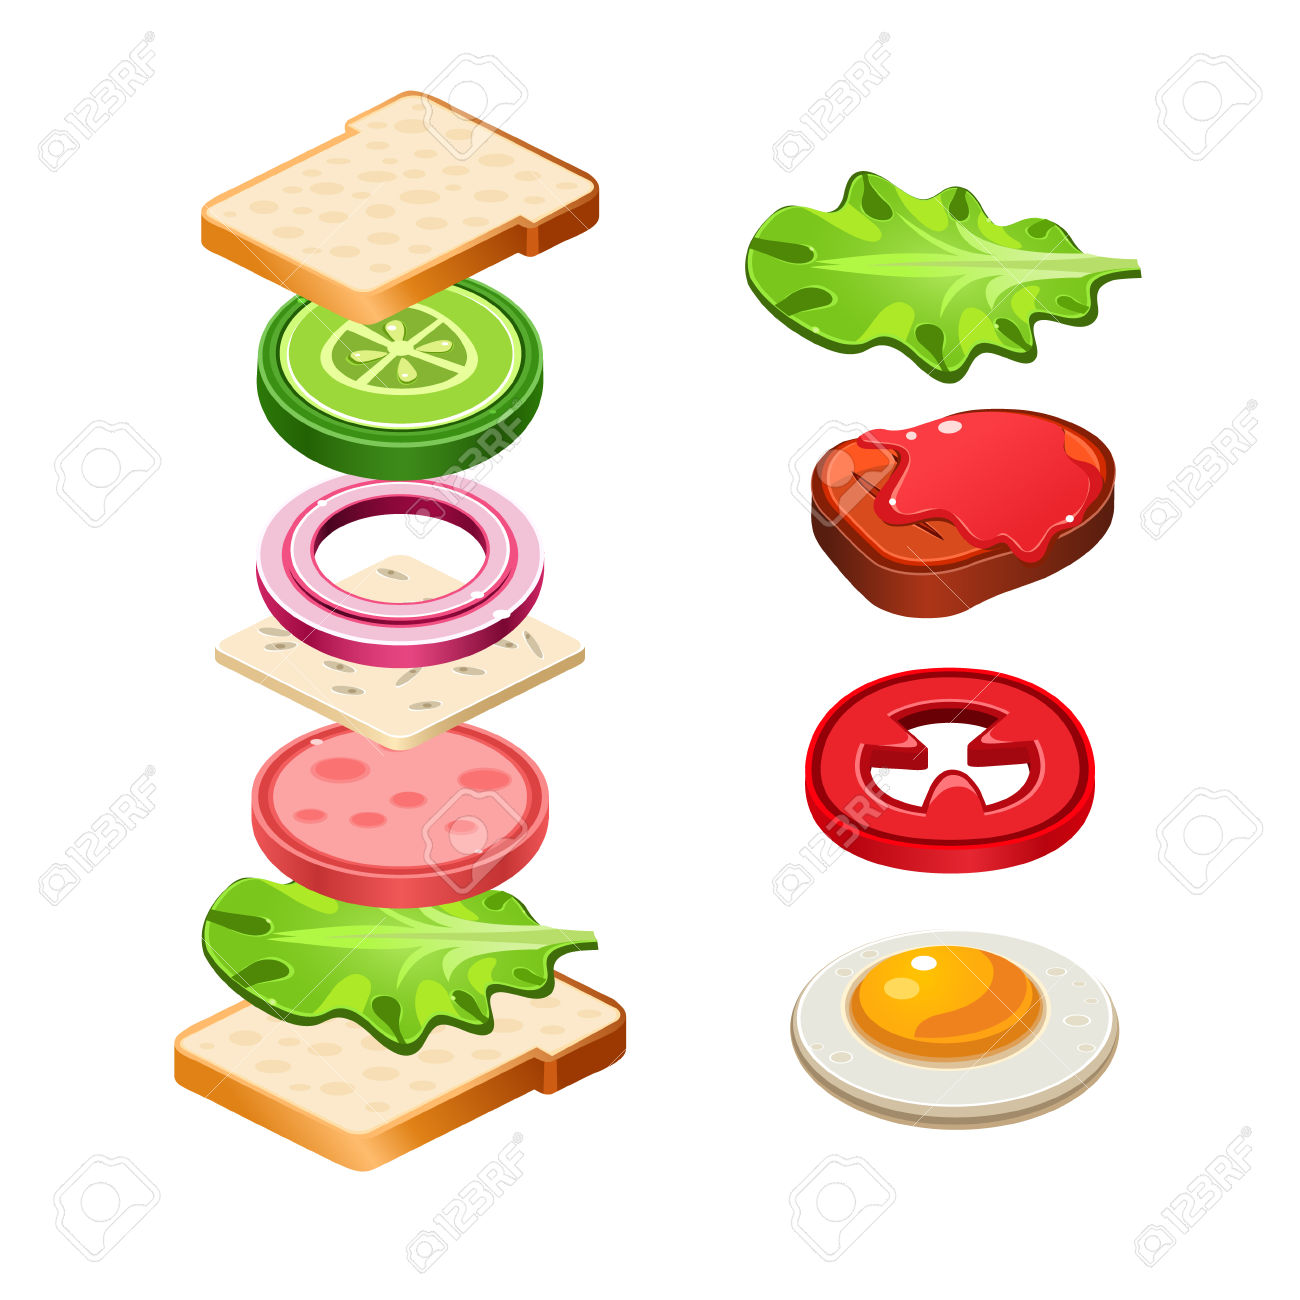 Sandwich Ingredients Food Emblem With Bread Onion Cucumber Tomato.